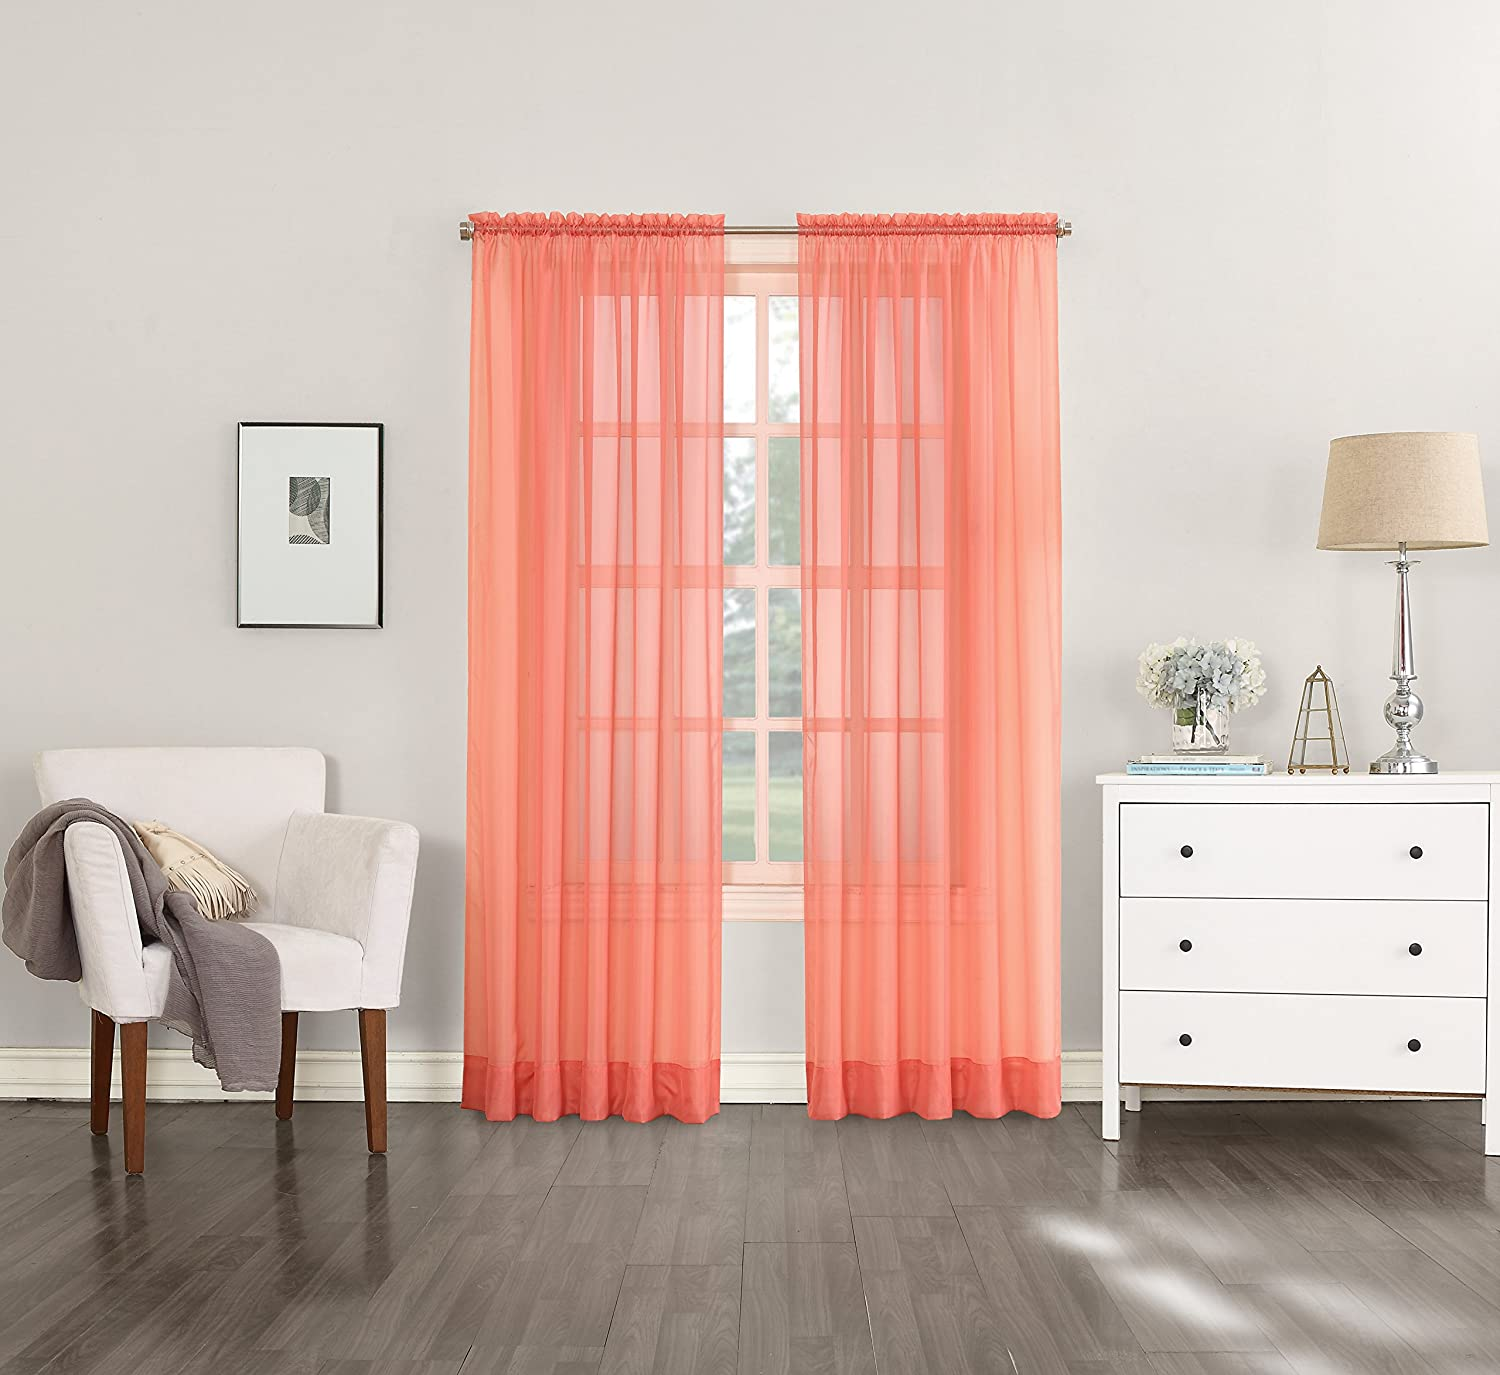 Coral curtains for sale - Buy Beautiful Coral Curtains On Sale